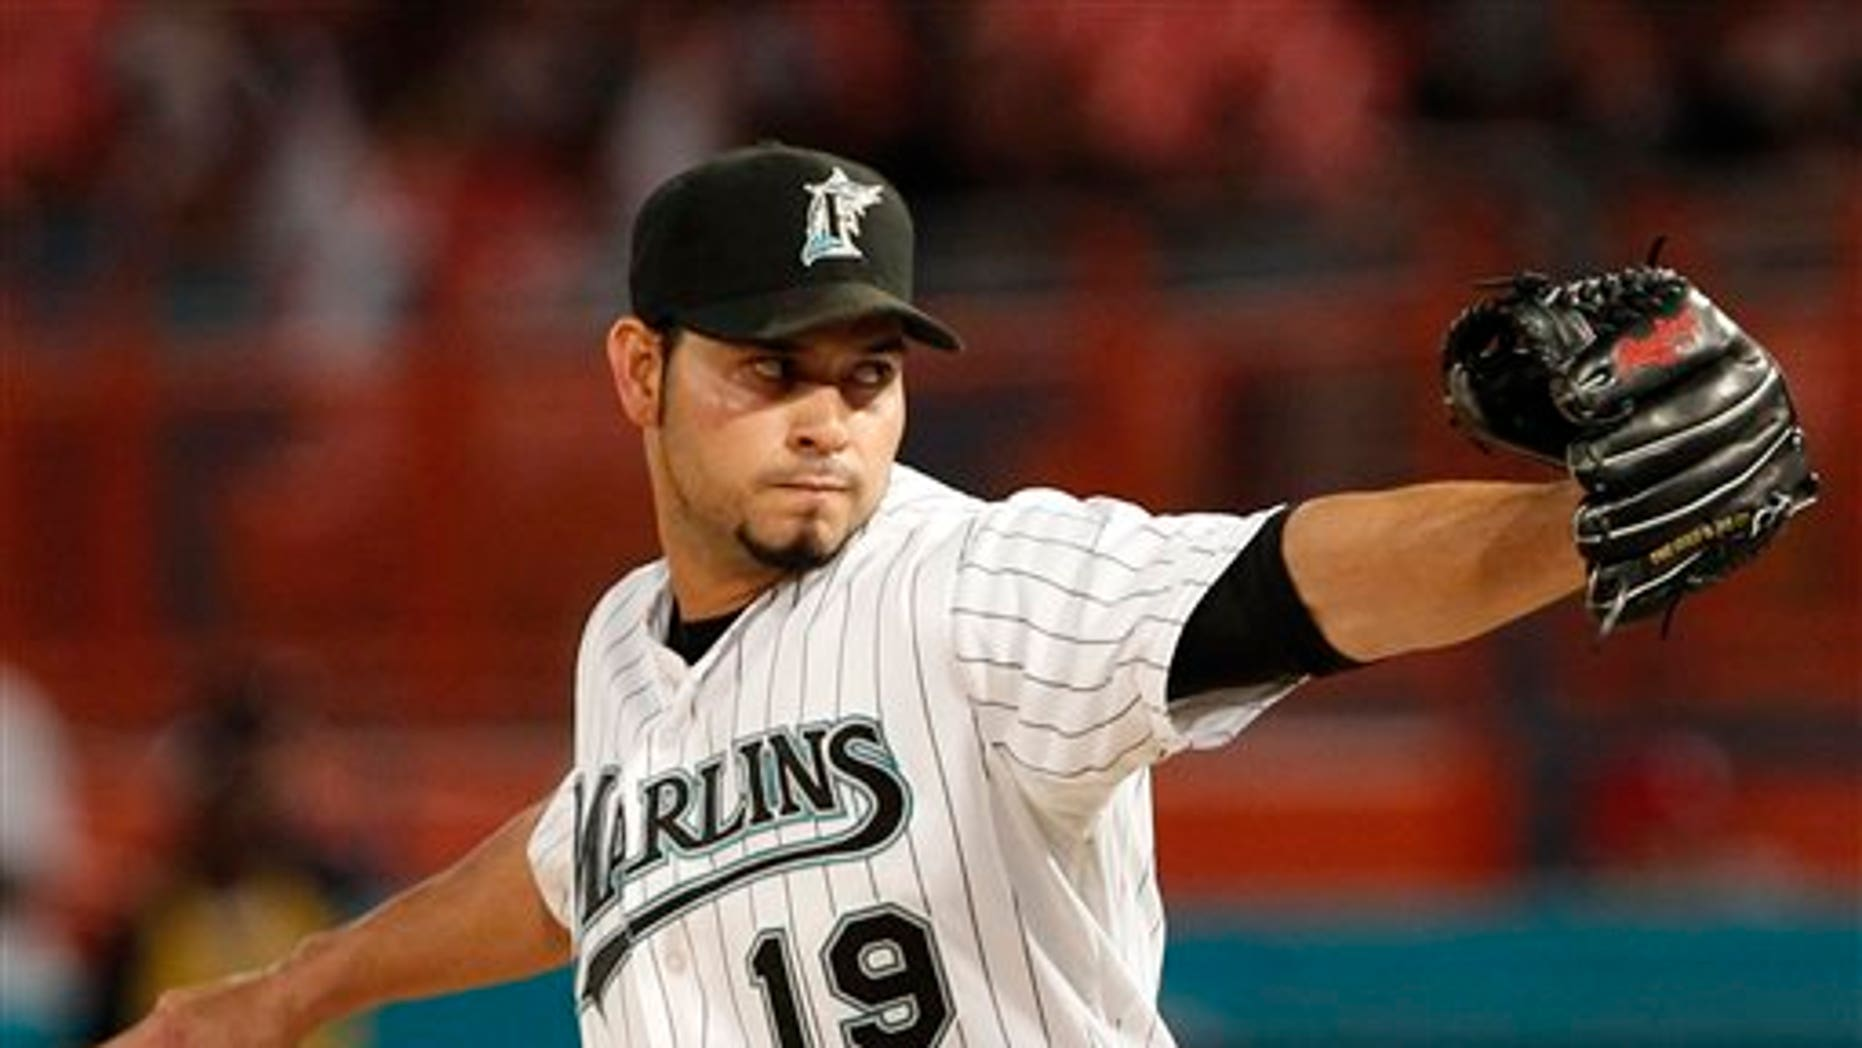 April 22, 2011: Florida Marlins' Anibal Sanchez delivers a pitch in the seventh inning of a baseball game against the Colorado Rockies in Miami. Rockies' Dexter Fowler singled to lead off the ninth inning for the only hit against Sanchez in the game as the Marlins defeated the Rockies 4-1.